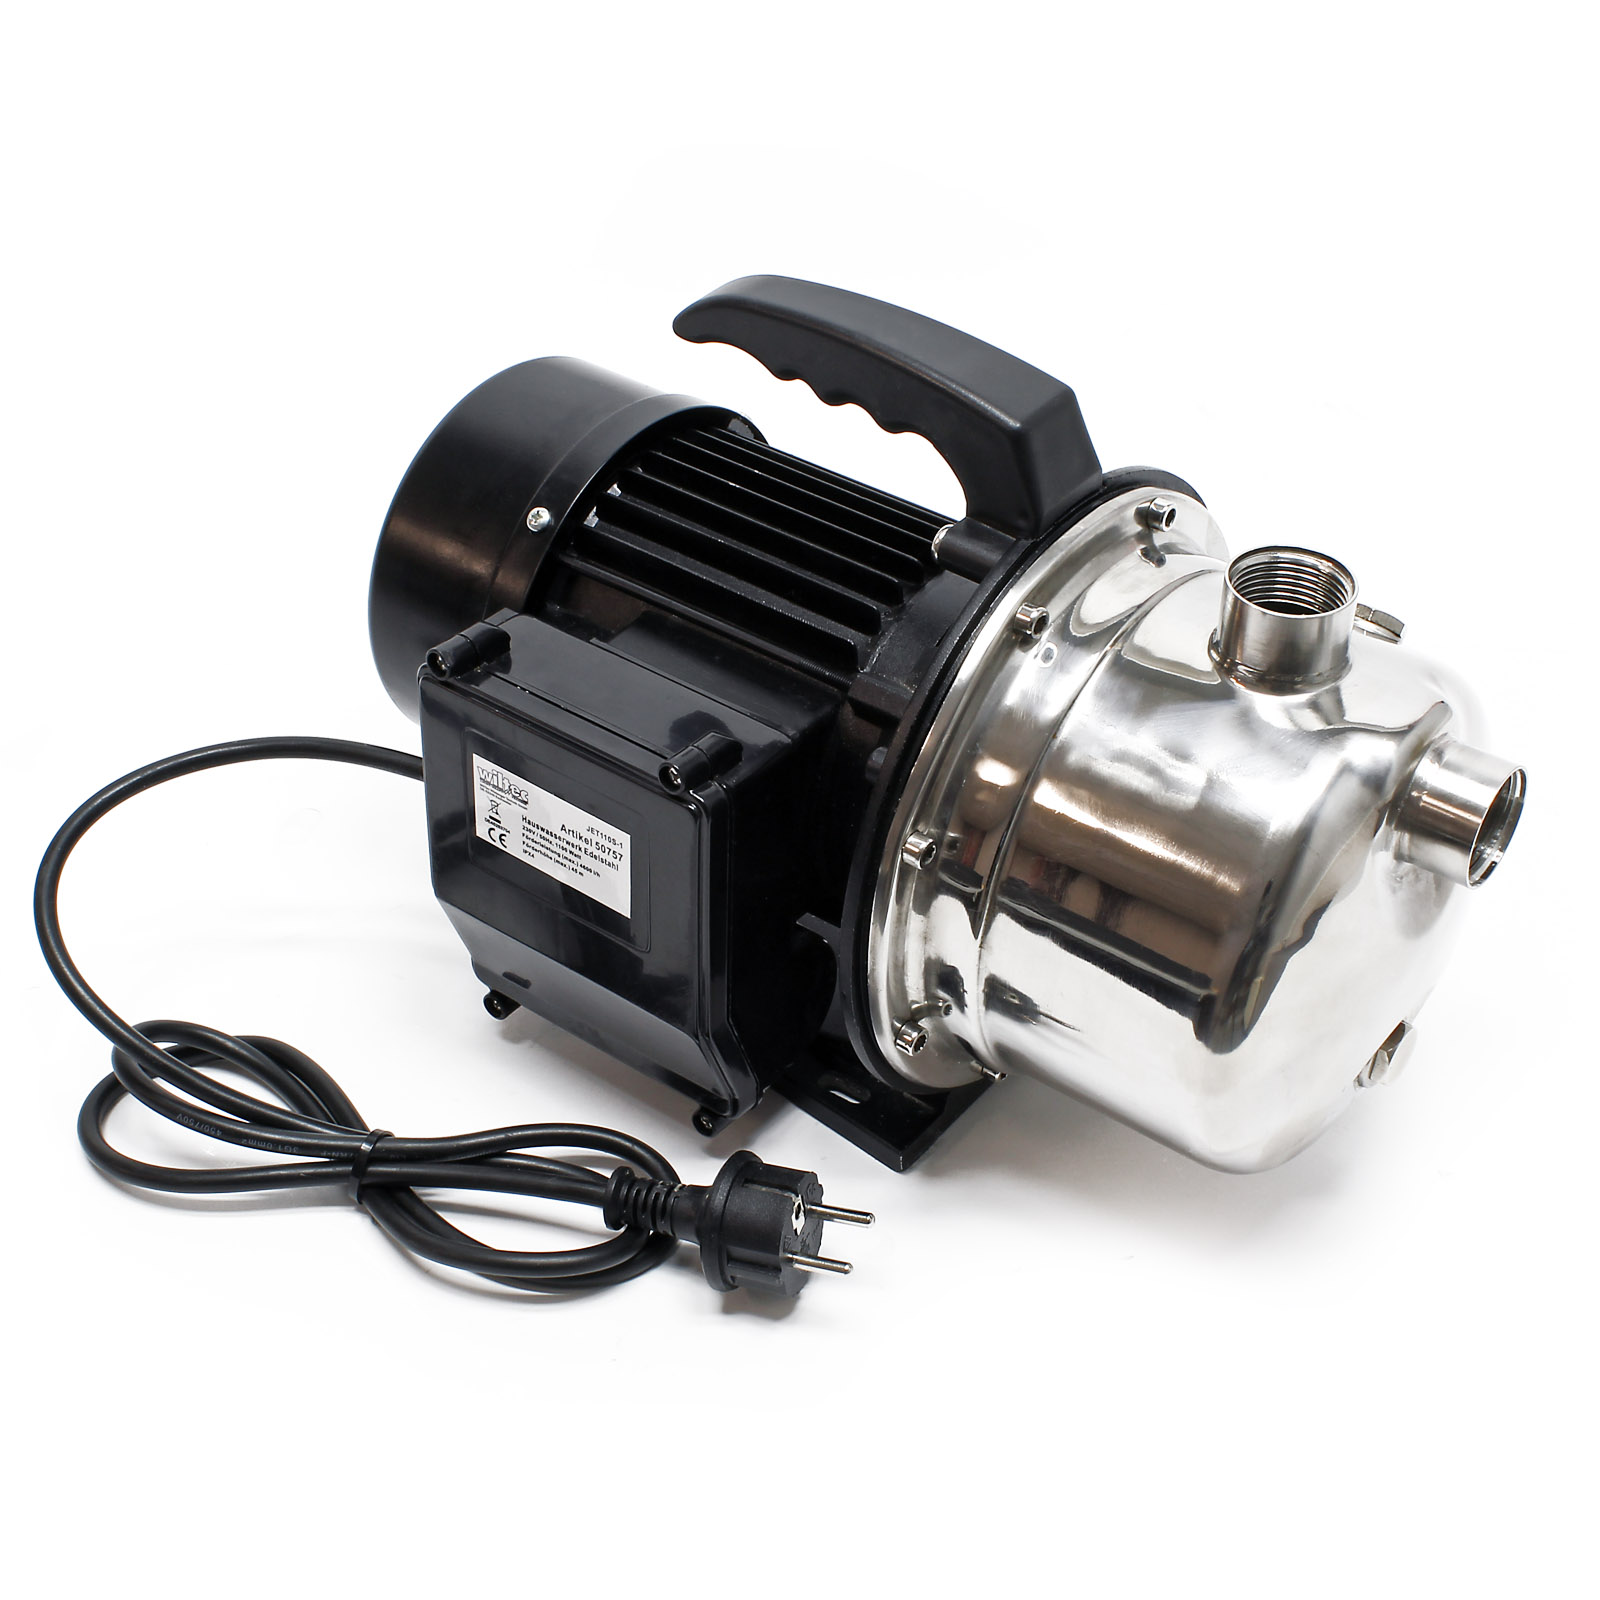 verschiedene varianten gartenpumpe hauswasserwerk. Black Bedroom Furniture Sets. Home Design Ideas